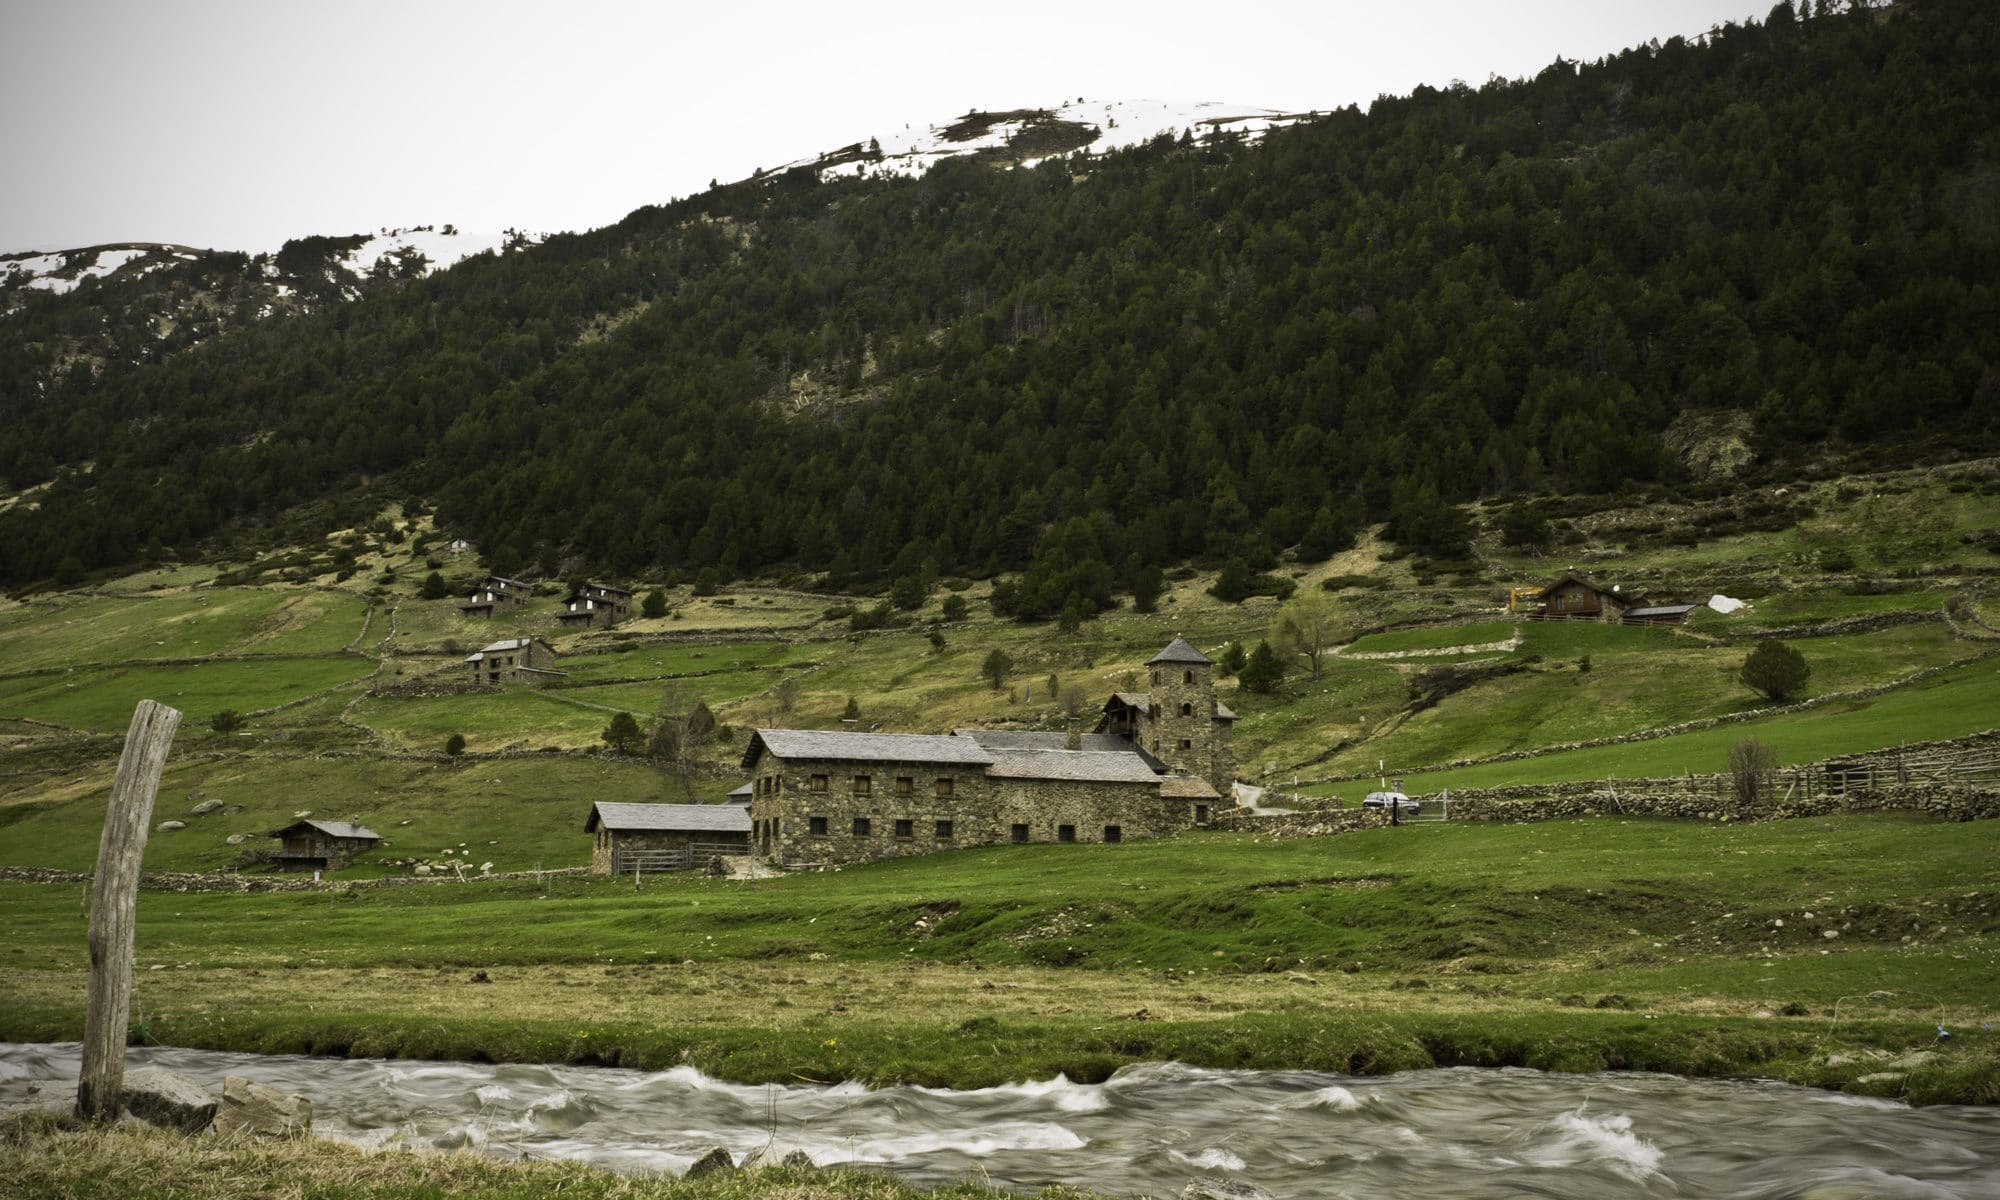 Incles Valley: the best place to live in Andorra?